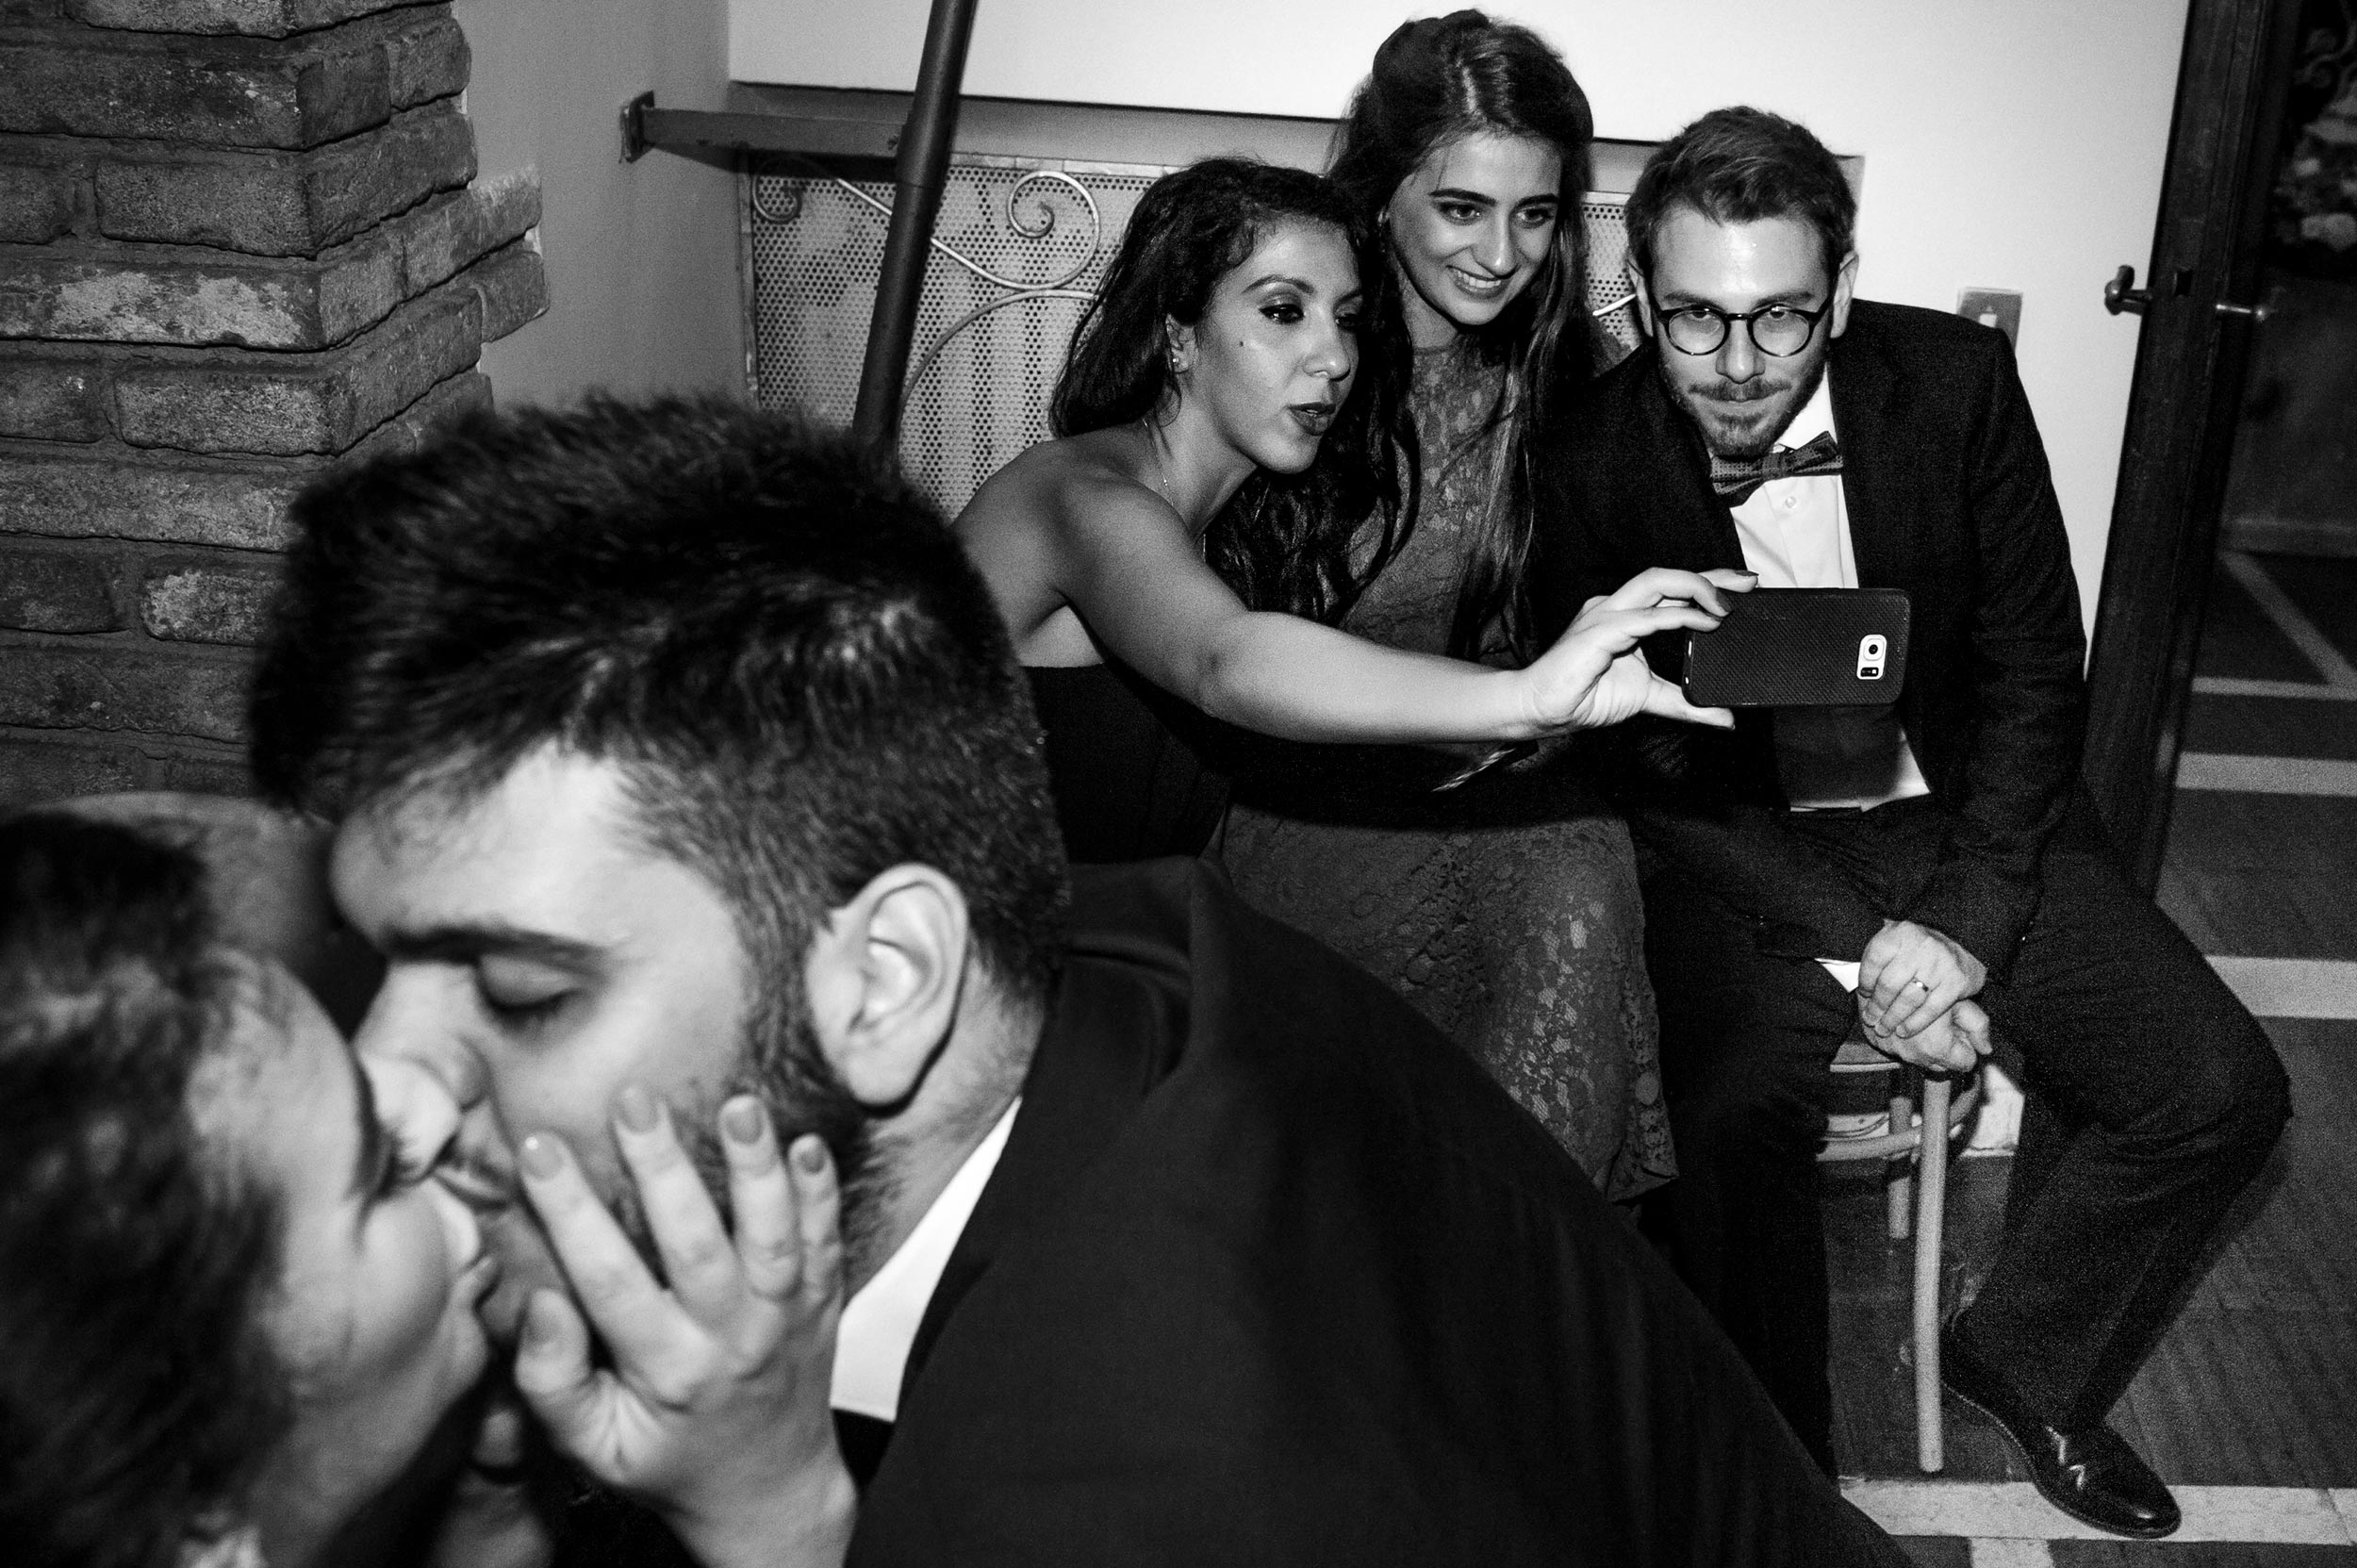 selfie-at-wedding-while-another-couple-kisses-multi-subject-street-photography-black-and-white-wedding-photography.jpg